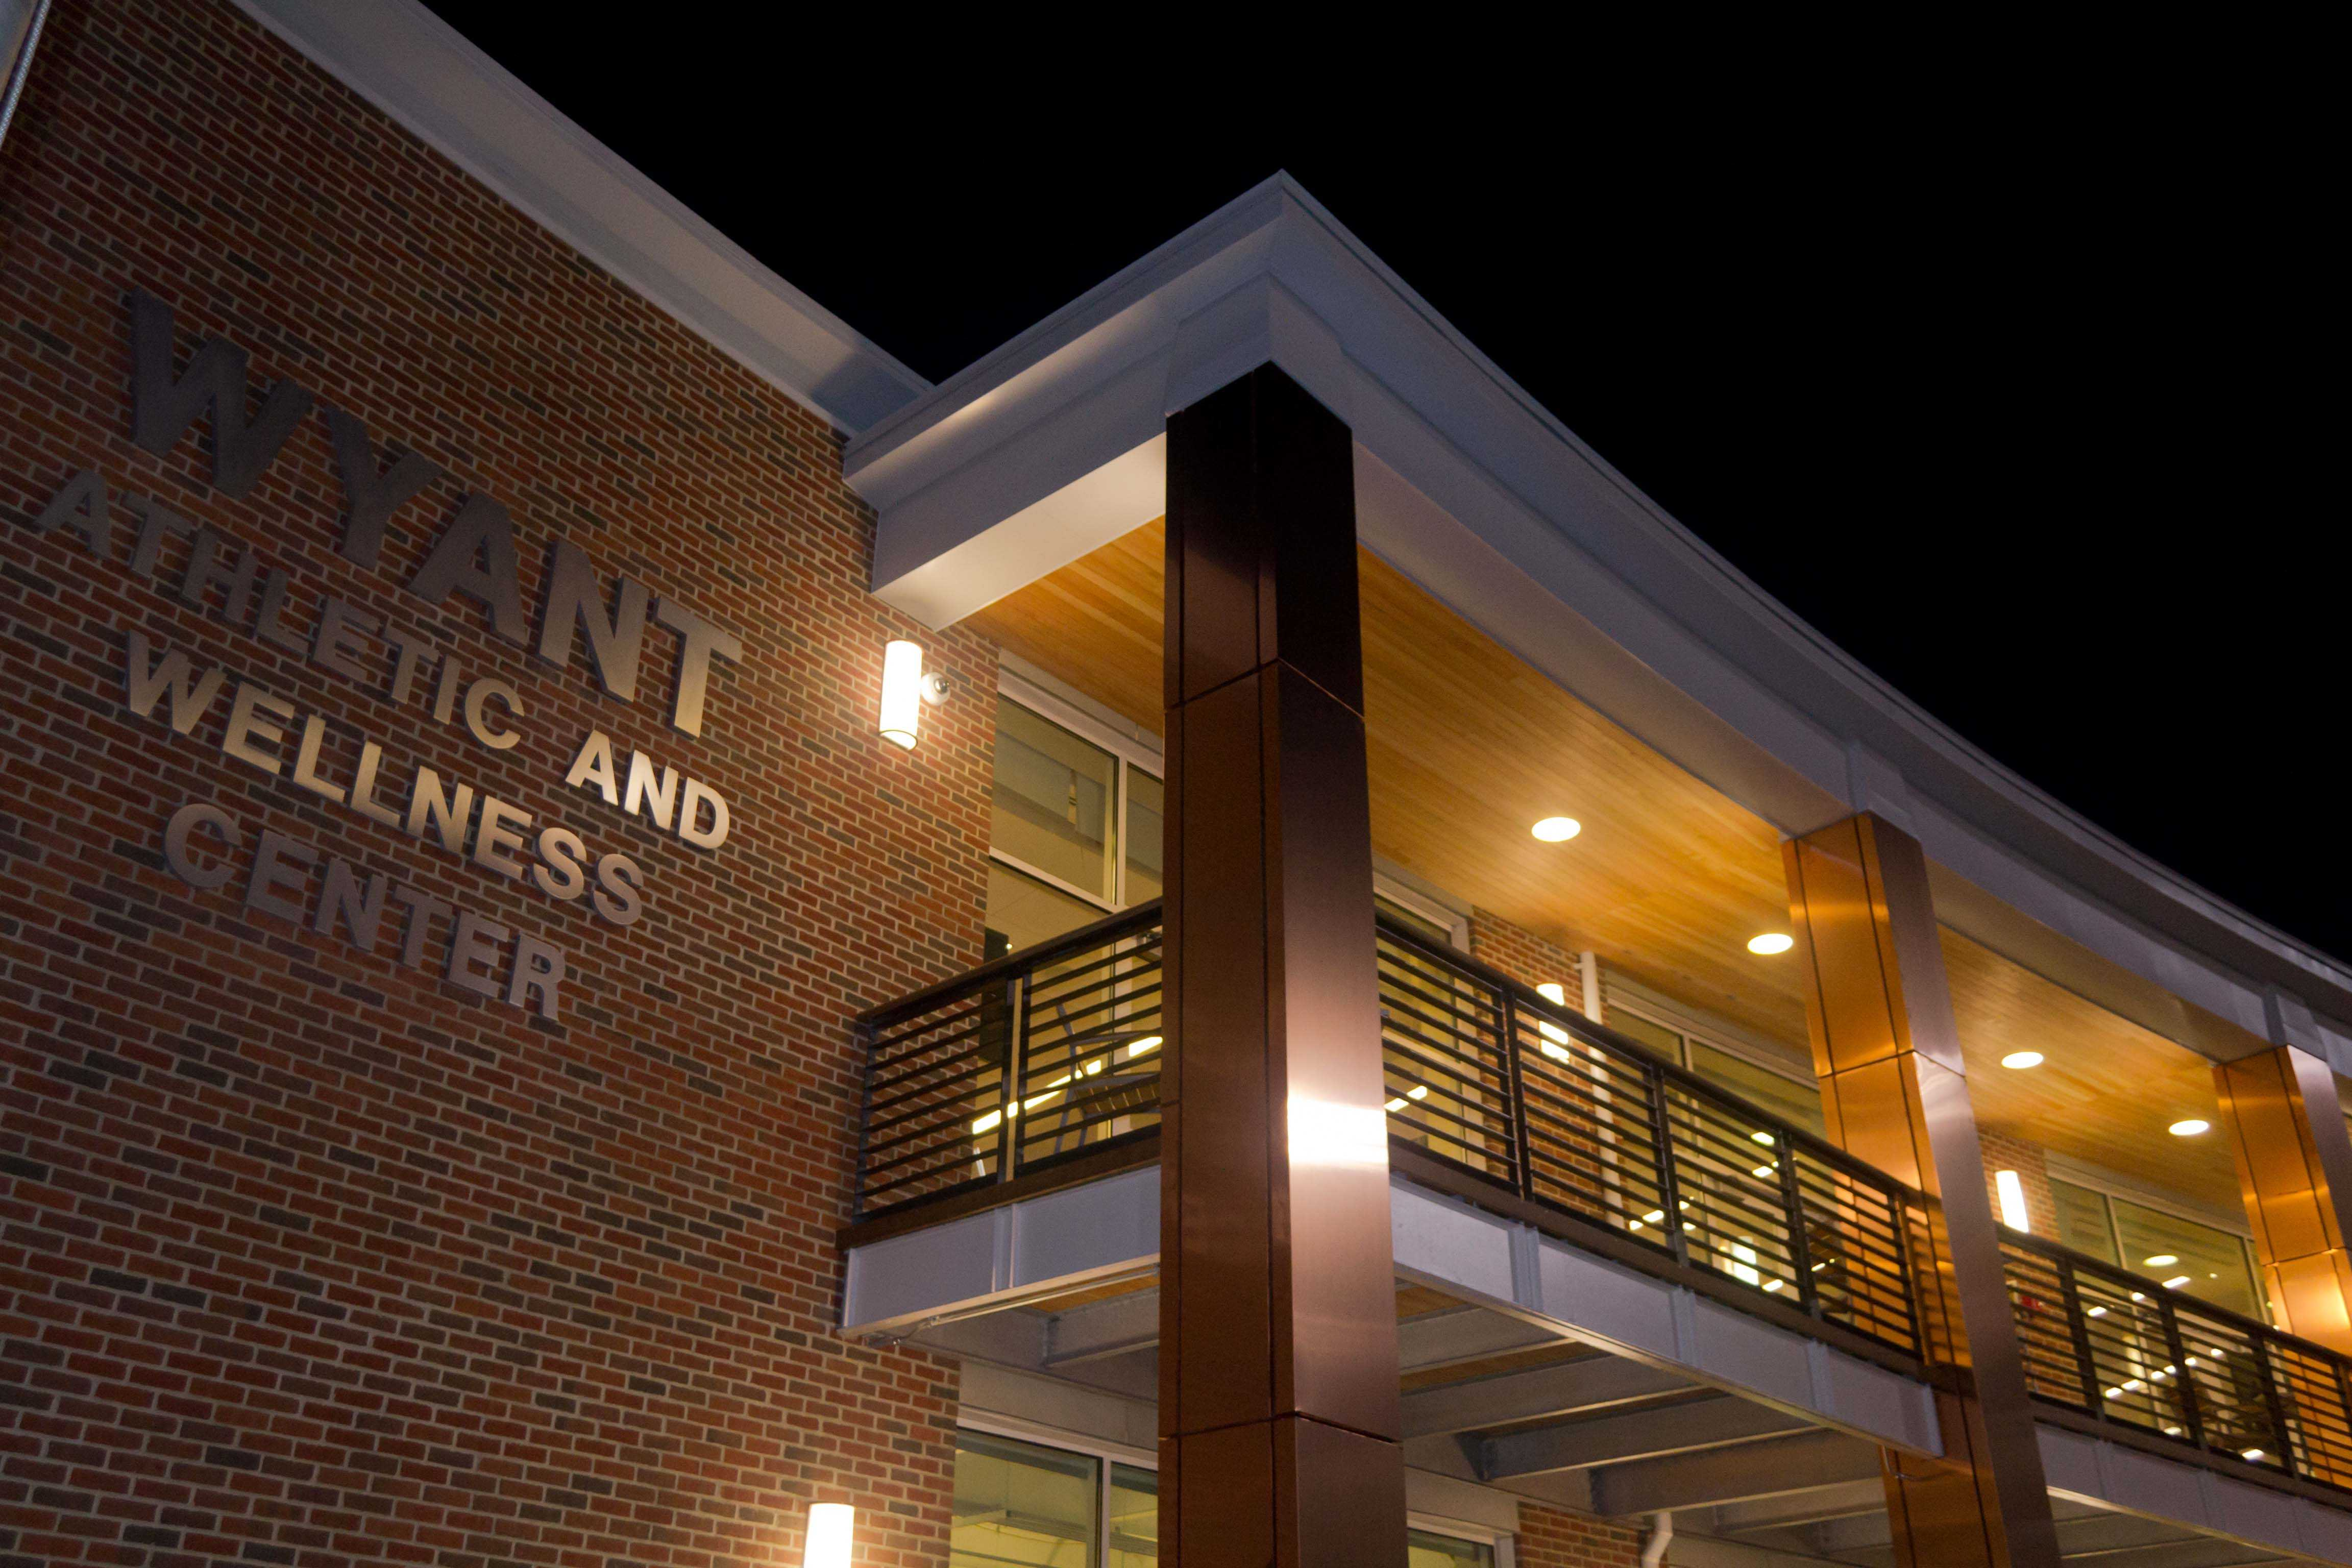 New Wyant Athletic and Wellness Center opens for use on Monday, October 19th.